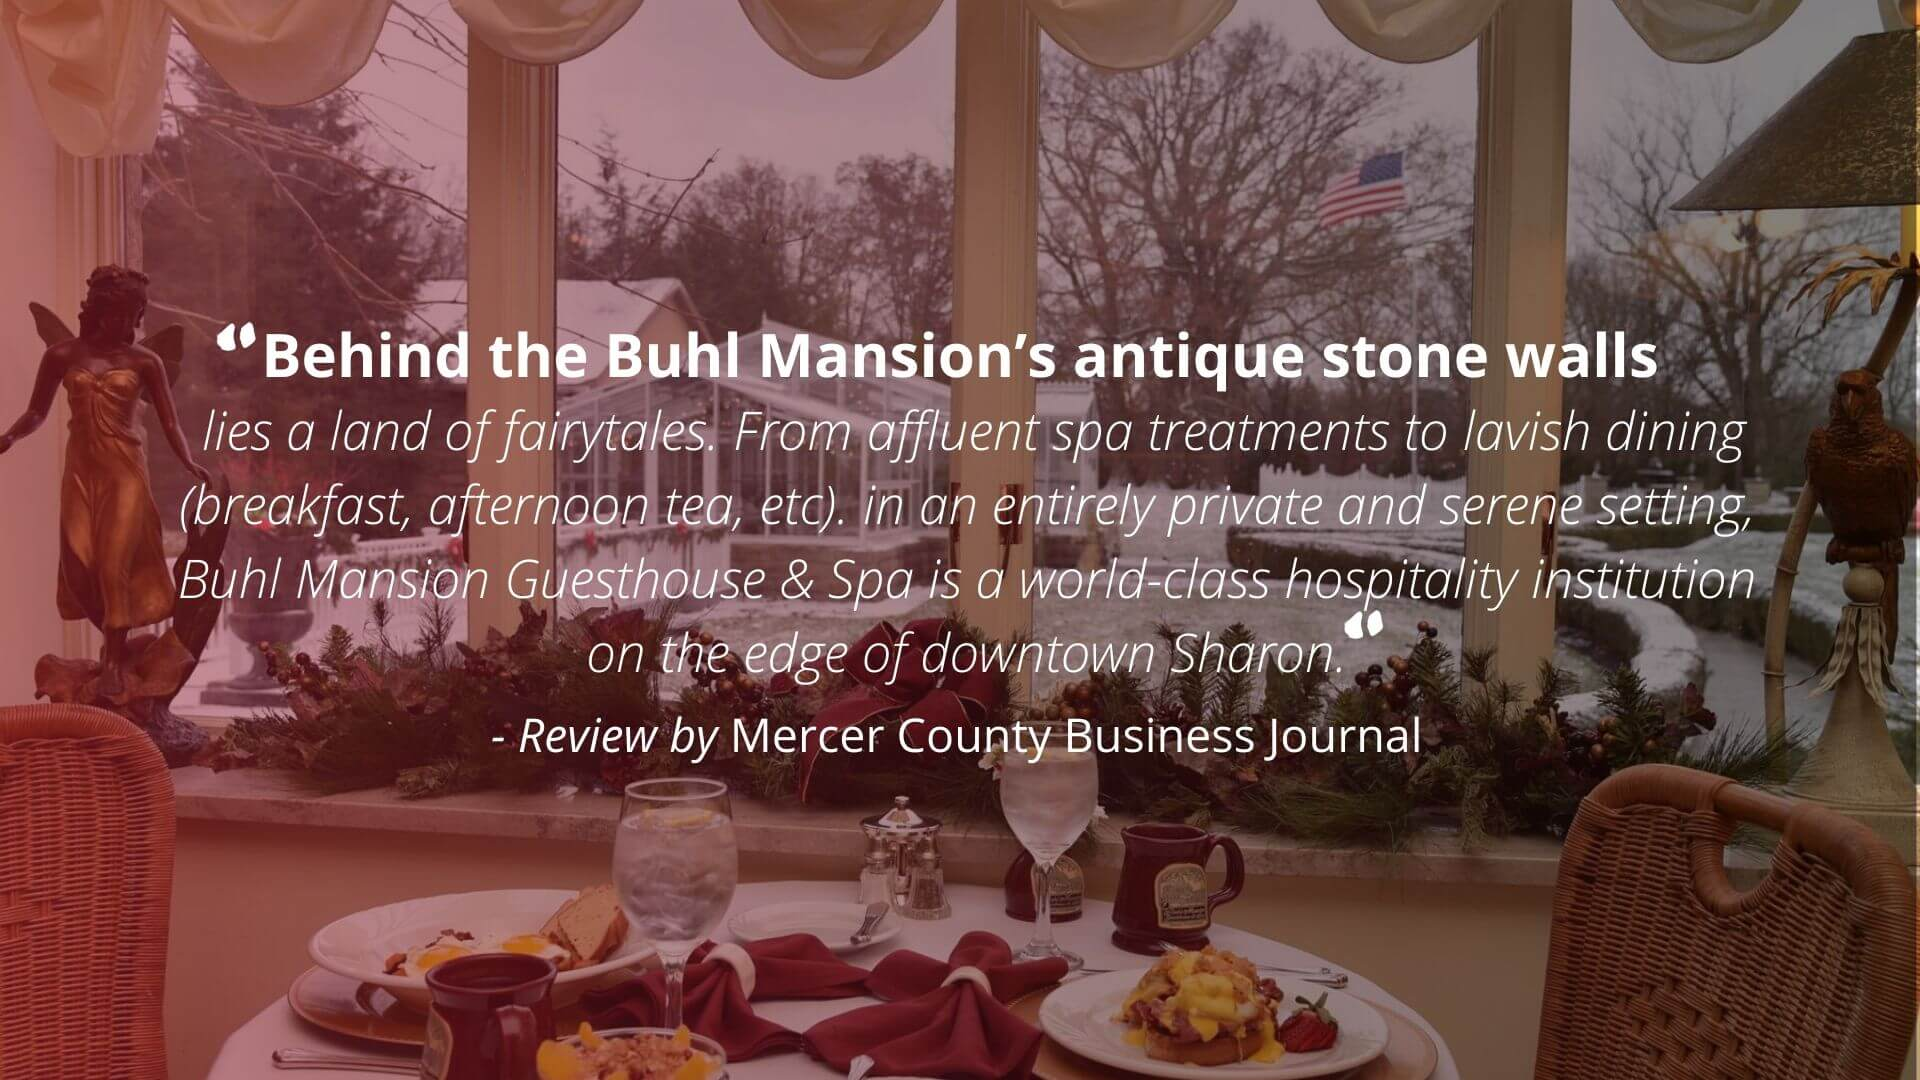 """Behind the Buhl Mansion's antique stone walls lies a land of fairytales. From affluent spa treatments to lavish dining (breakfast, afternoon tea, etc) in an entirely private and serene setting, Buhl Mansion Guesthouse & Spa is a world-class hospitality institution on the edge of downtown Sharon."" - Review by Mercer County Business Journal"